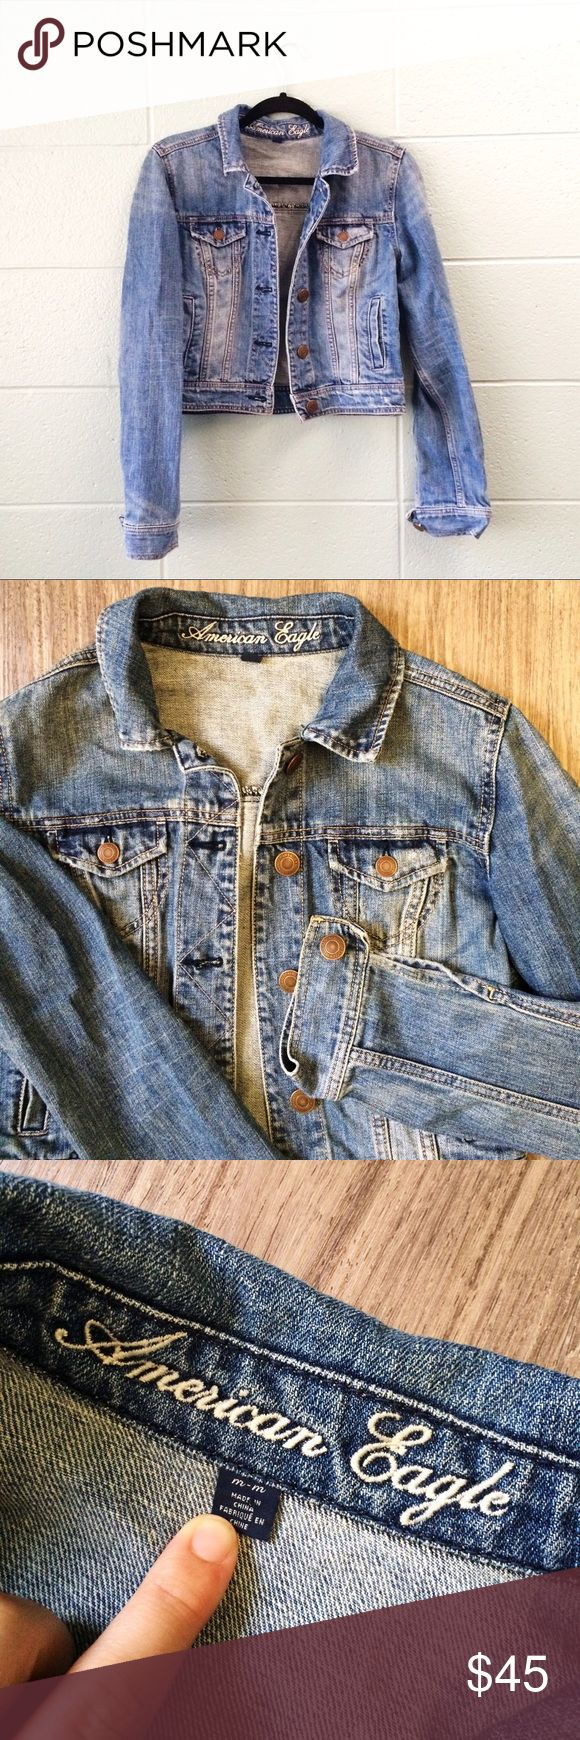 ✨SALE✨ AMERICAN EAGLE Jean Jacket Women's Medium Jean Jacket by American Eagle only worn a couple of times! In mint condition! ☺️ American Eagle Outfitters Jackets & Coats Jean Jackets